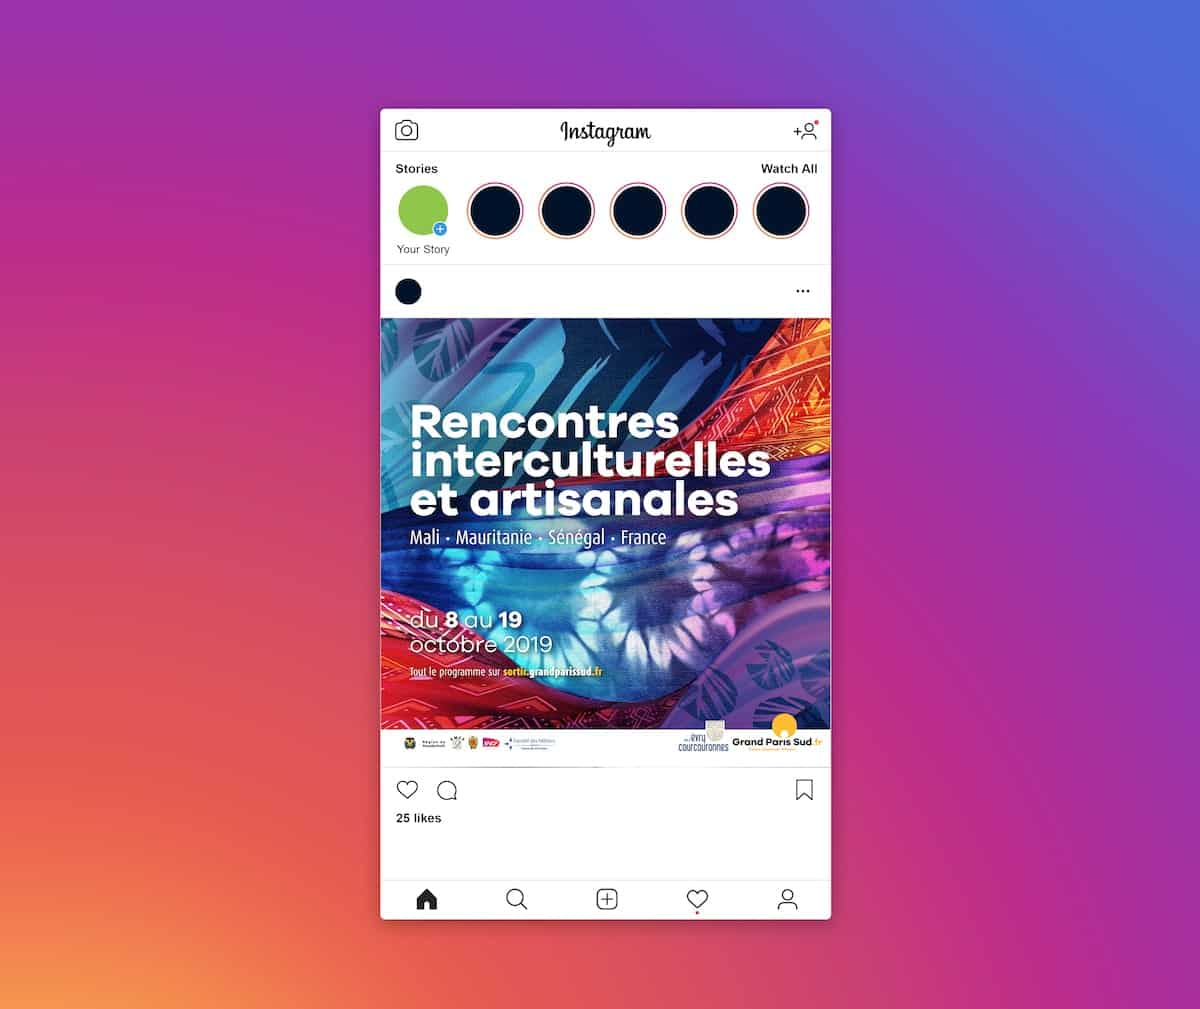 instagram solidarité internationale grand paris sud